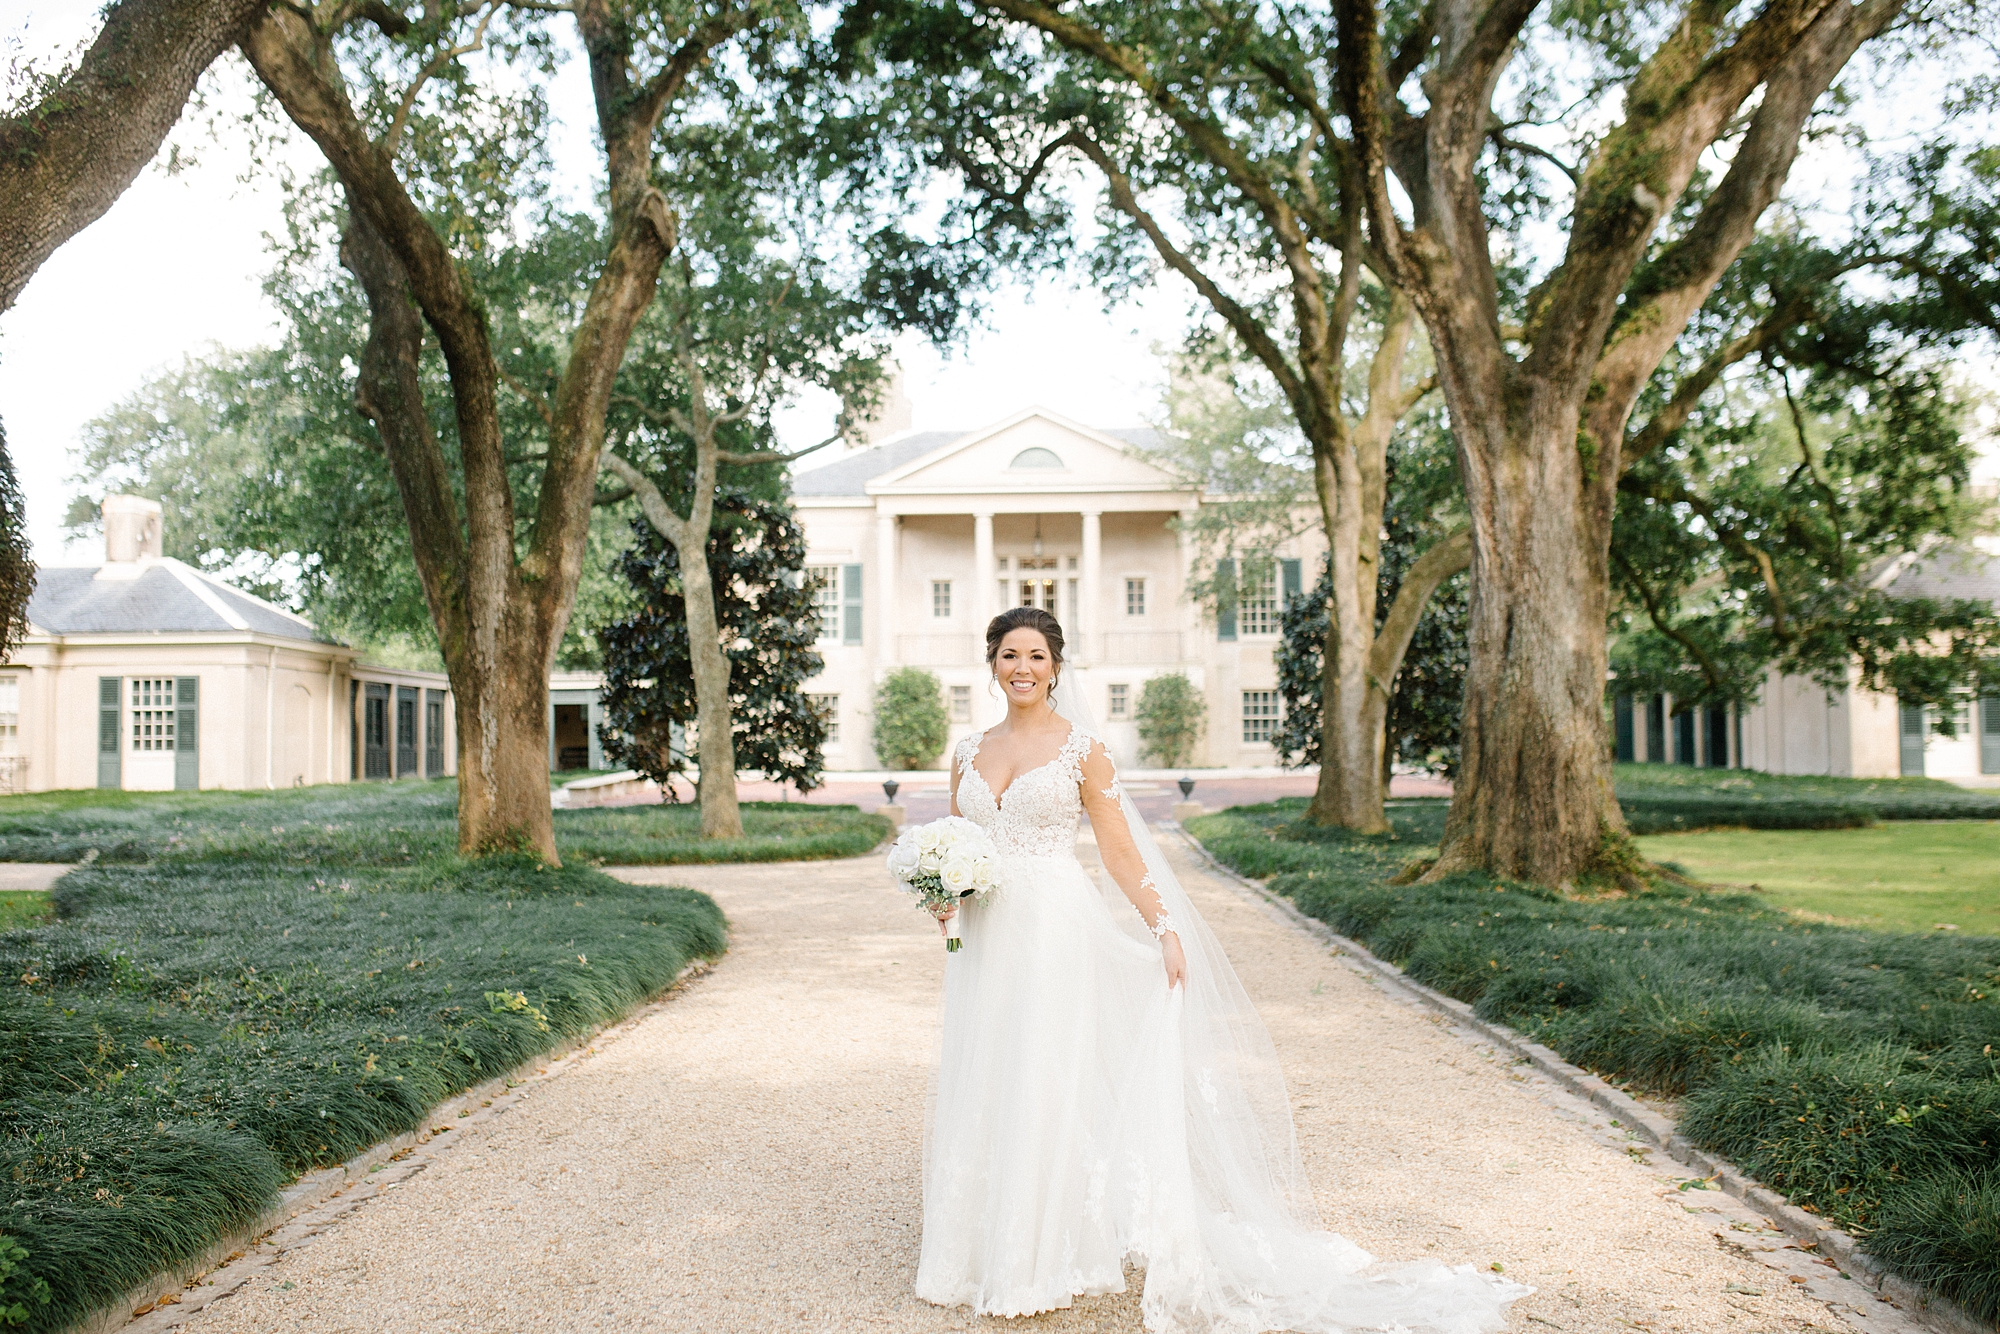 New_Orleans_Wedding_Photographer_0013-1.jpg